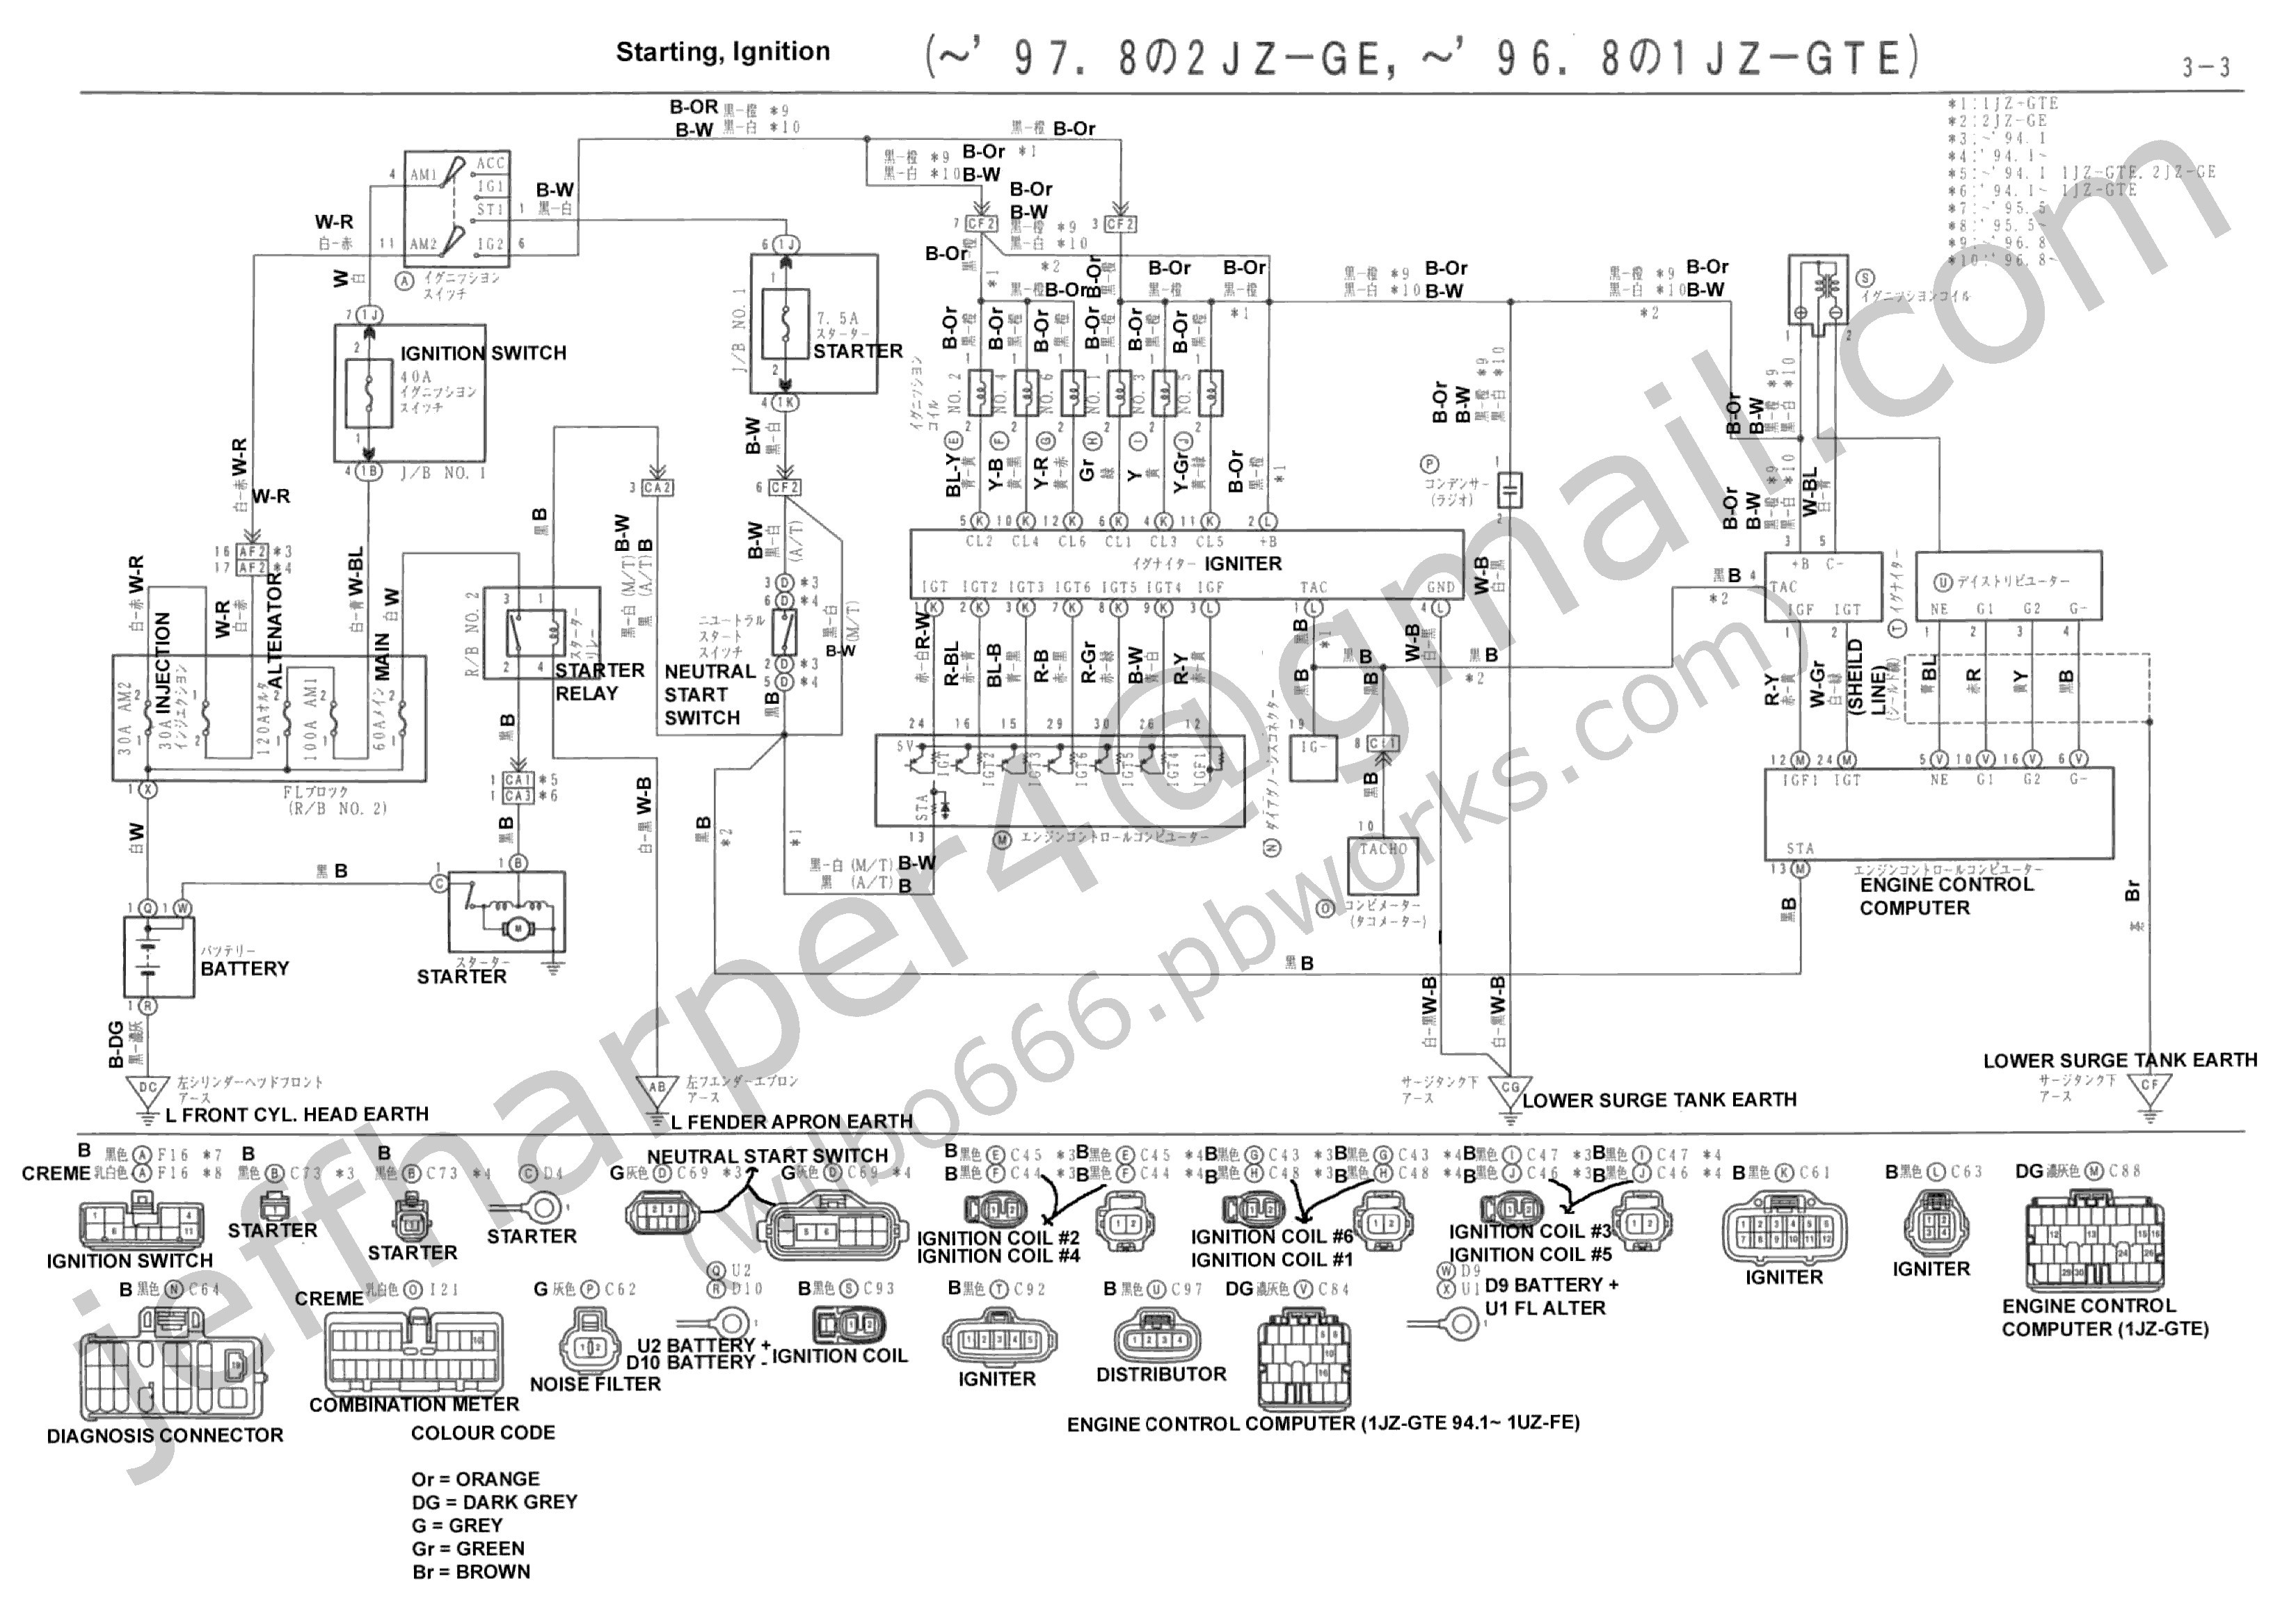 1991 toyota Corolla Engine Diagram 1992 toyota Pickup Engine Diagram Of  1991 toyota Corolla Engine Diagram